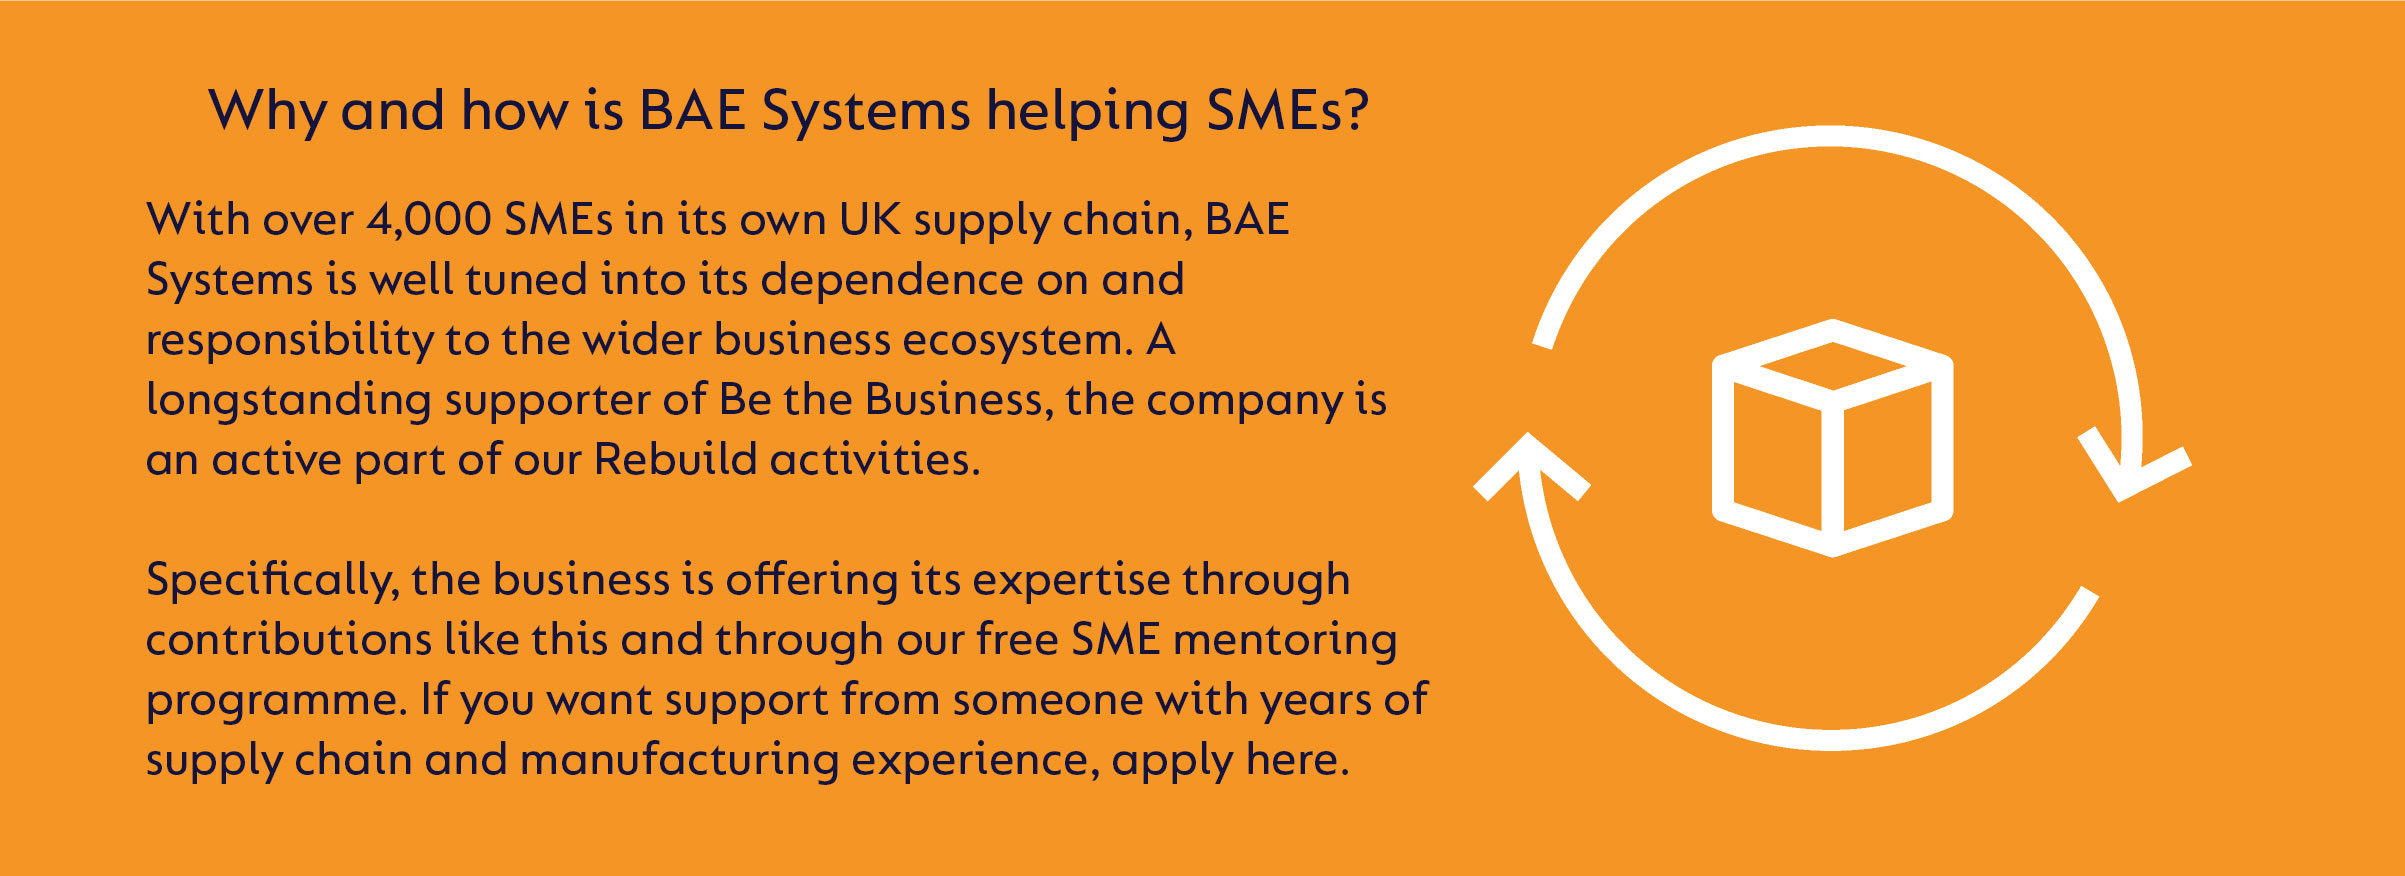 bae-systems-mentoring